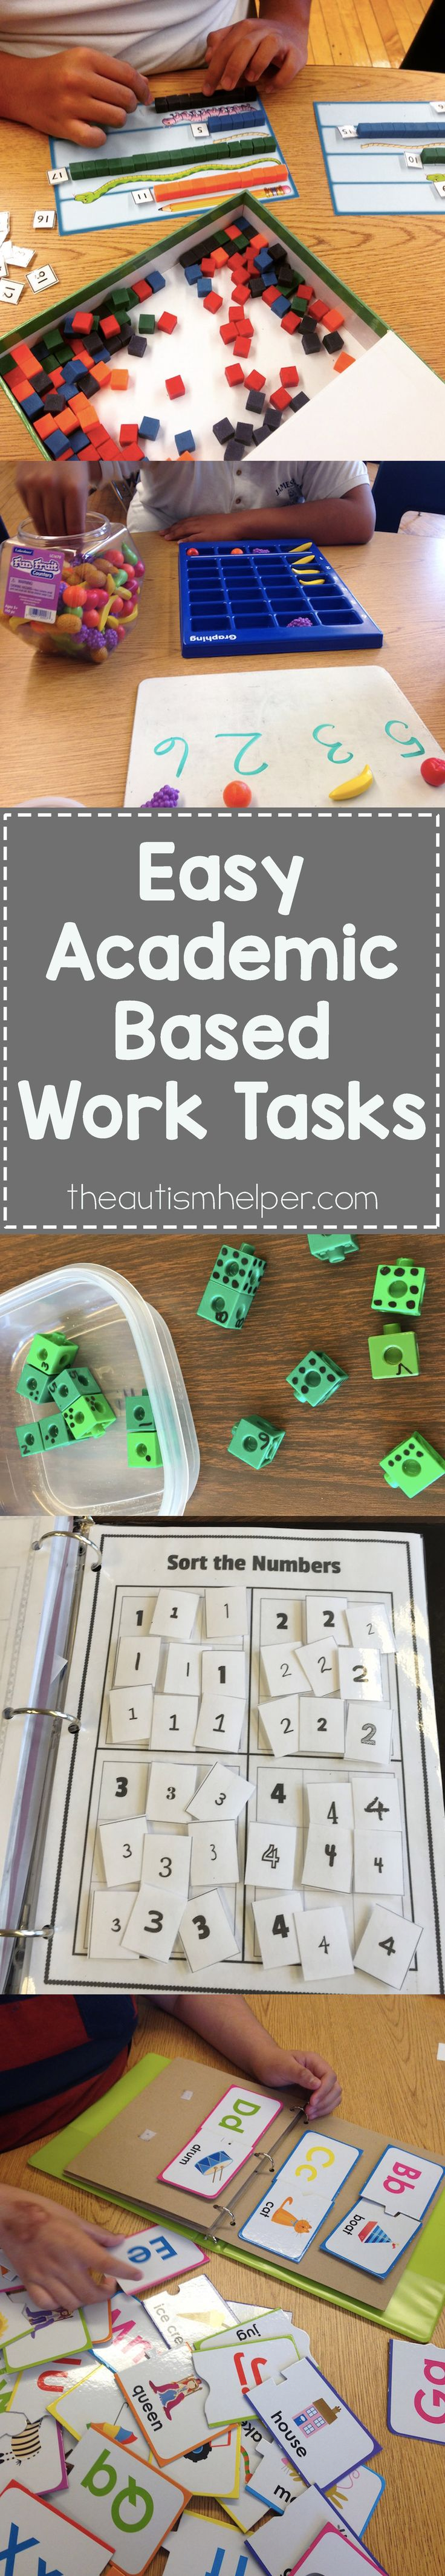 We're sharing some of our favorite ways to sneak academics into basic level work tasks on the blog. From theautismhelper.com #theautismhelper